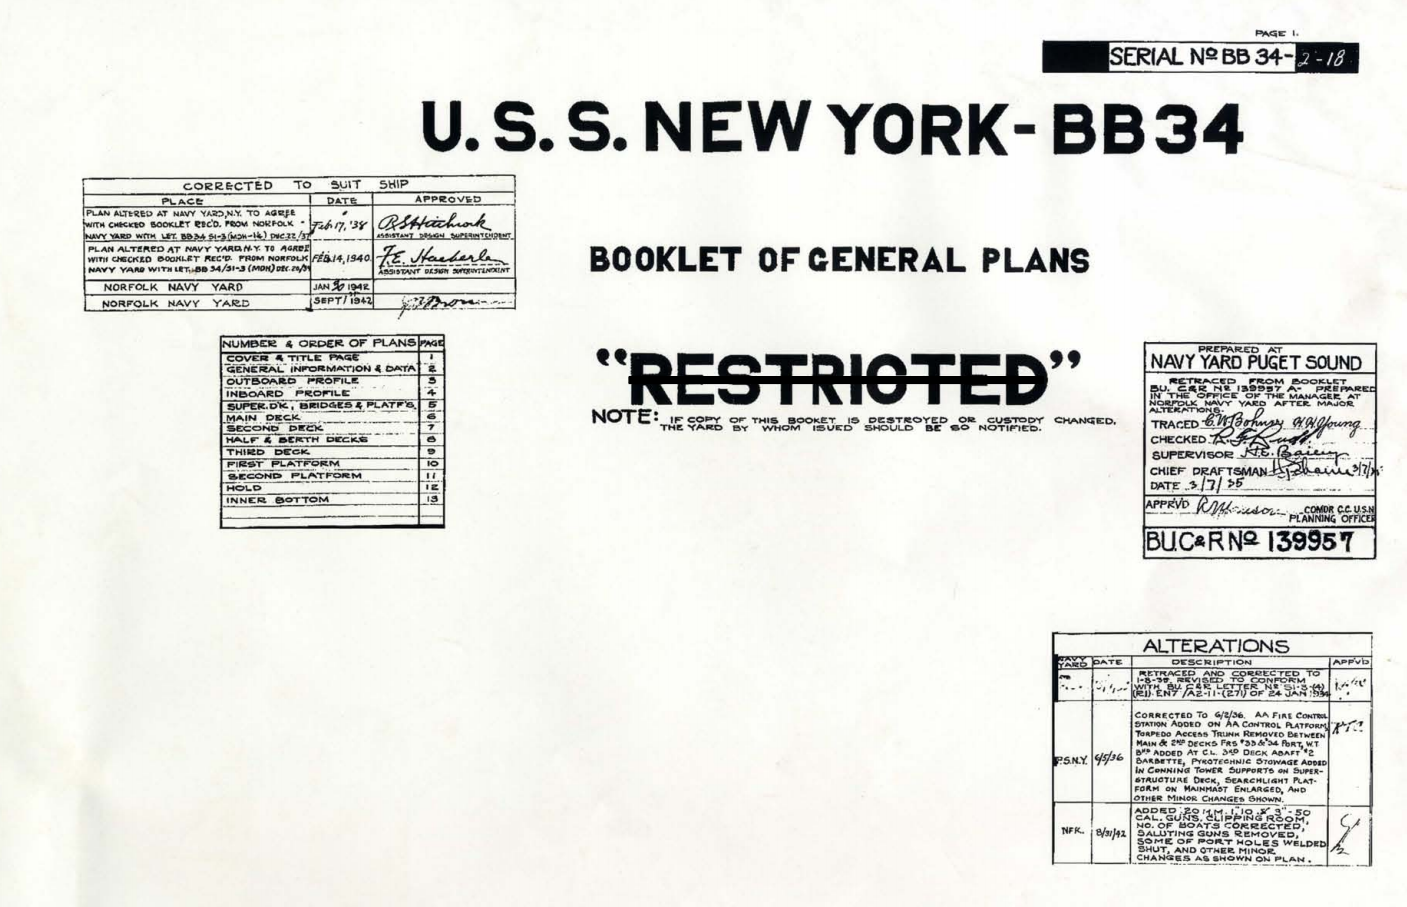 Uss new york bb34 booklet of general plans plans drawings blueprints uss new york bb34 booklet of general plans plans drawings blueprints httpmaritime malvernweather Image collections